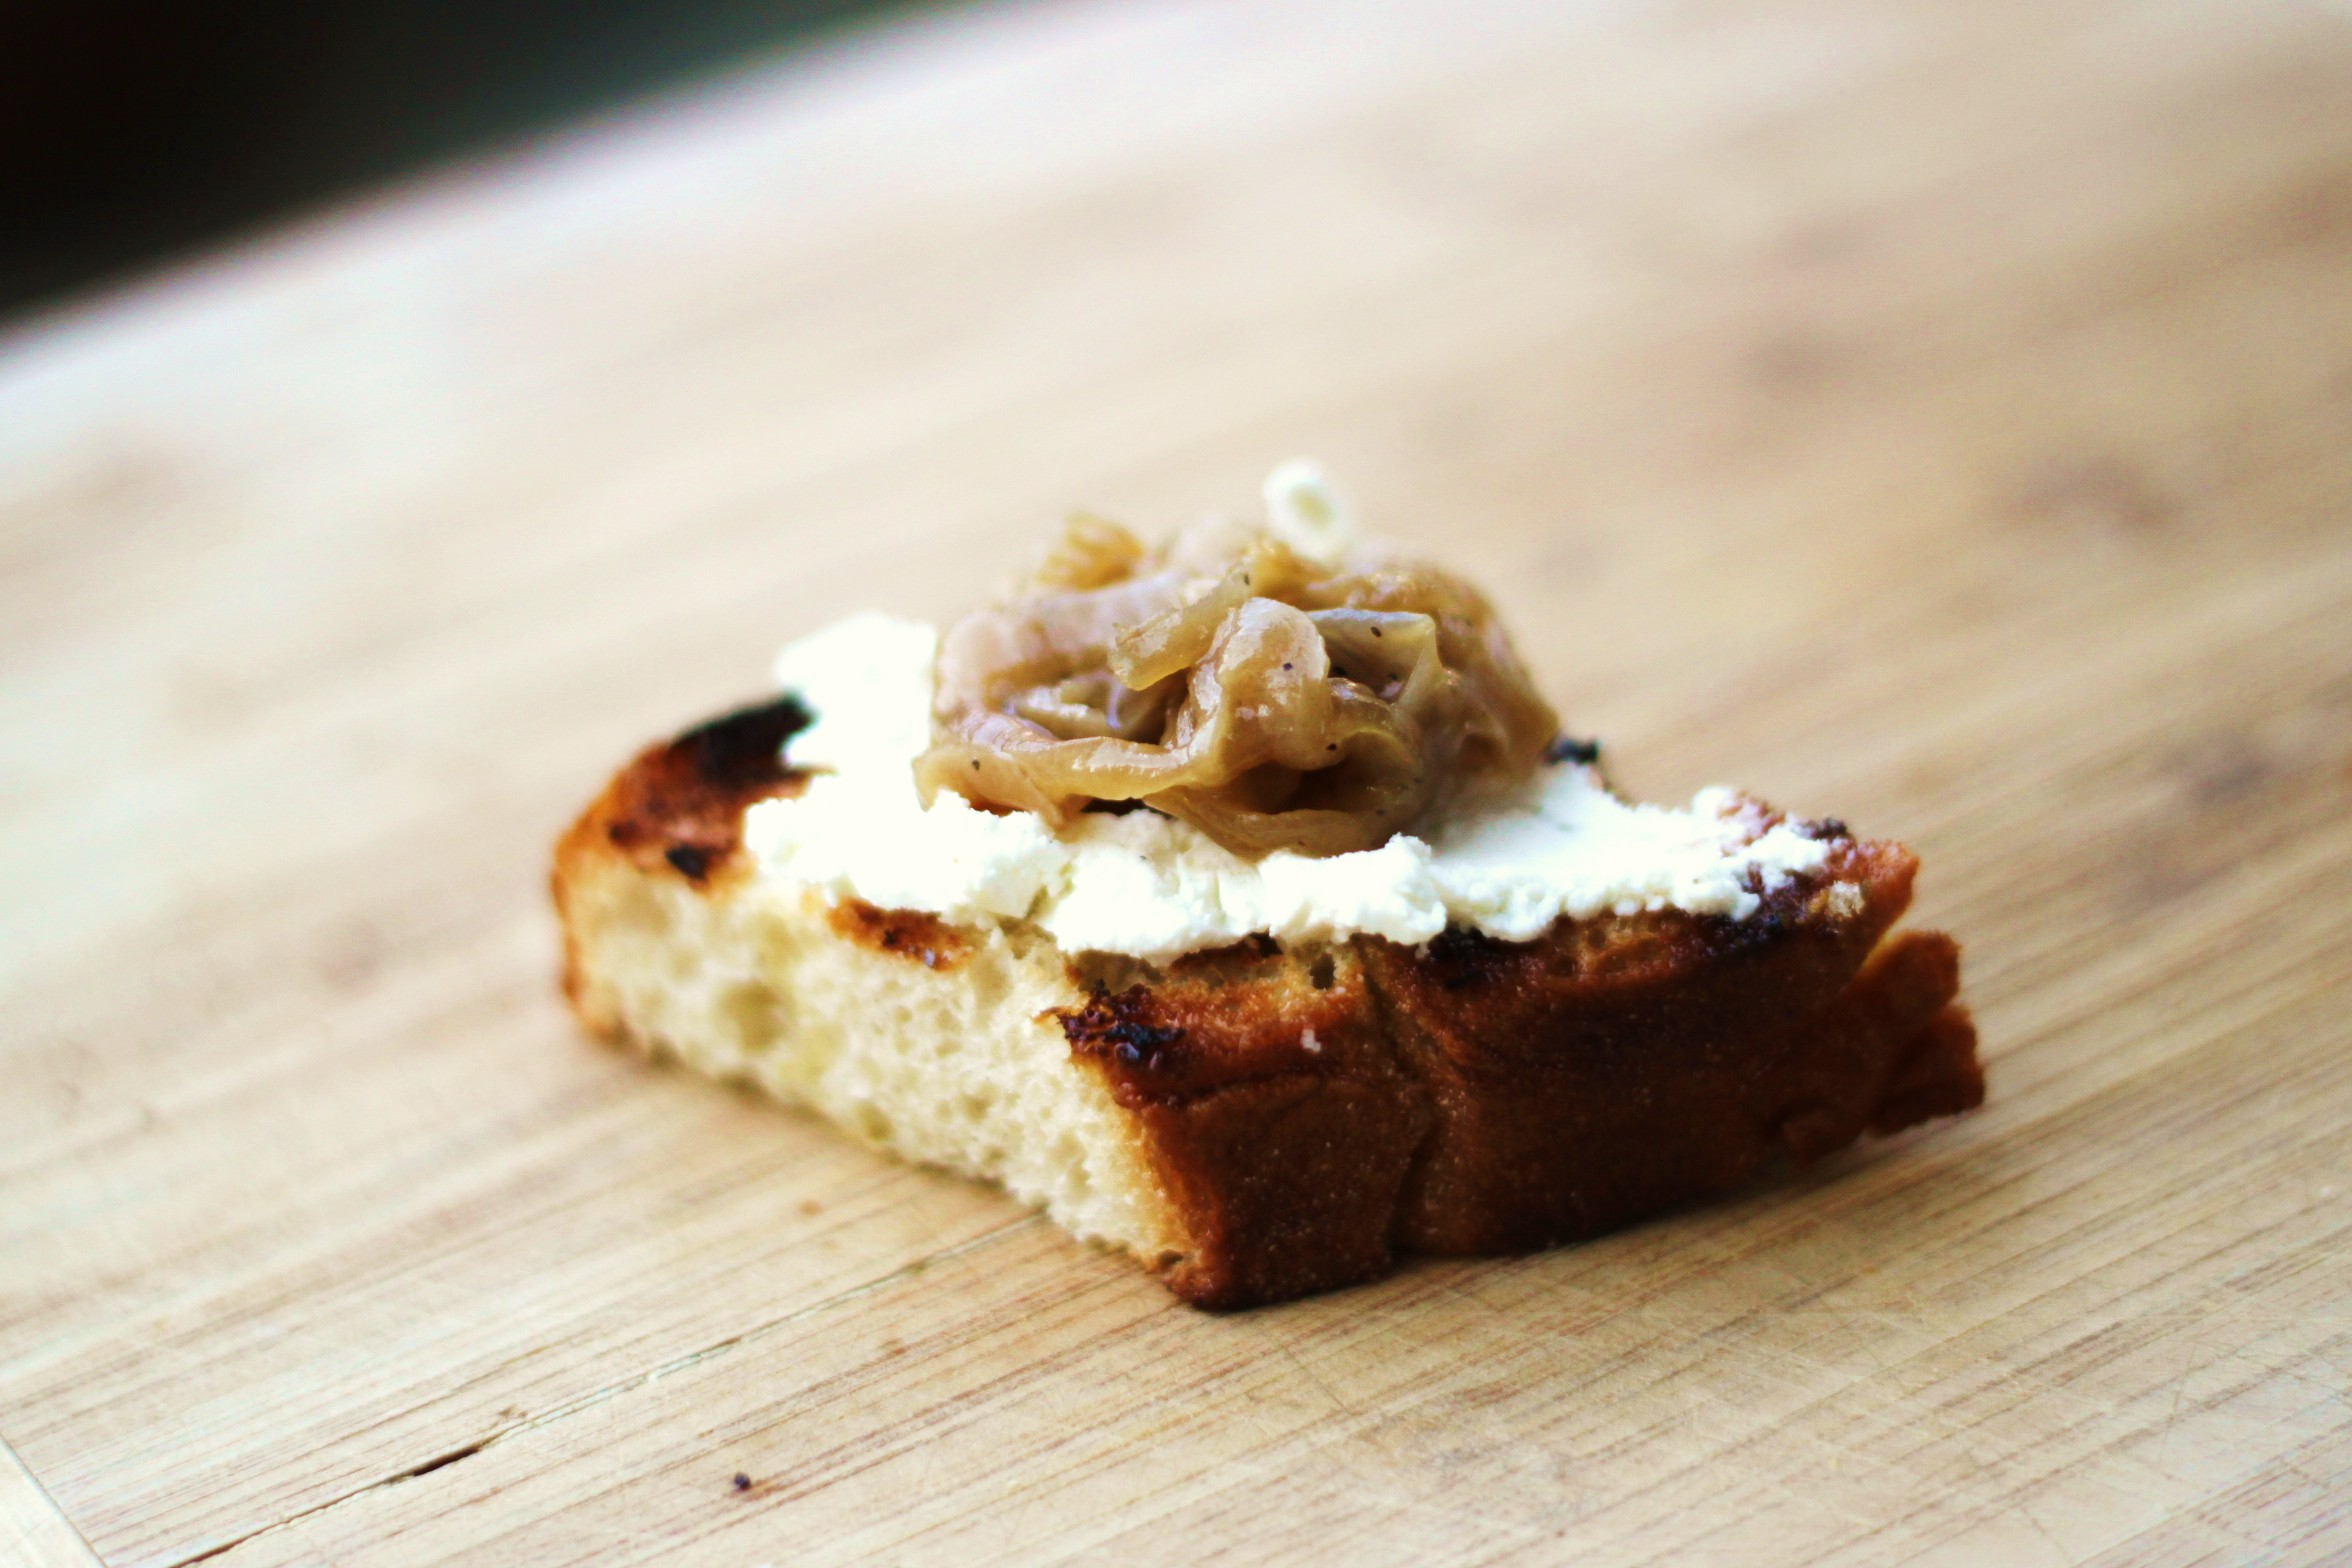 Caramelized Onion and Goat Cheese Toasts